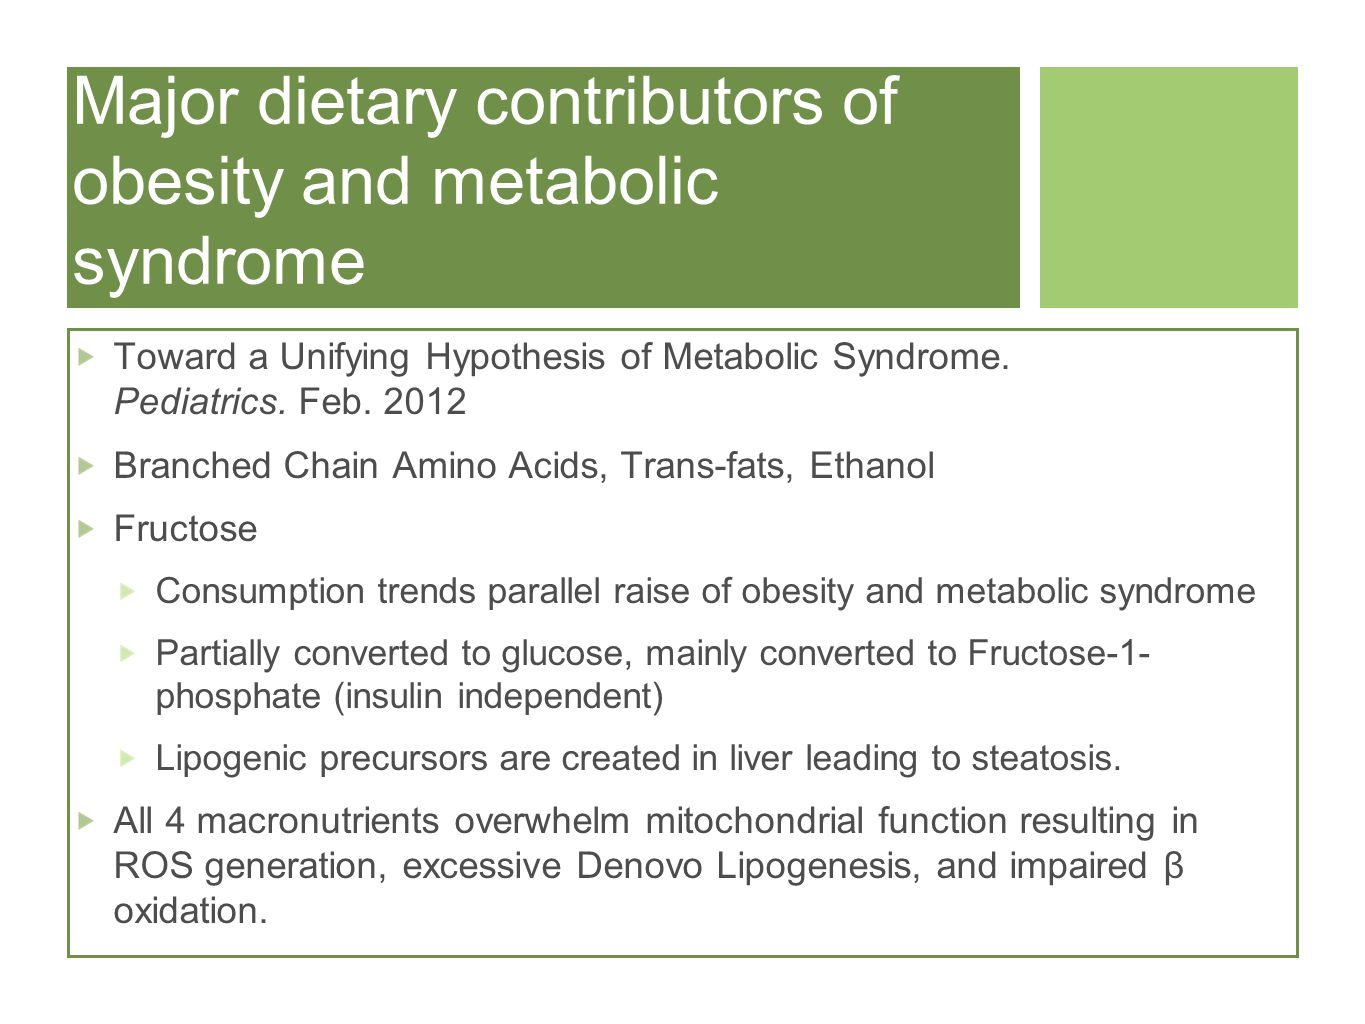 Major dietary contributors of obesity and metabolic syndrome Toward a Unifying Hypothesis of Metabolic Syndrome.